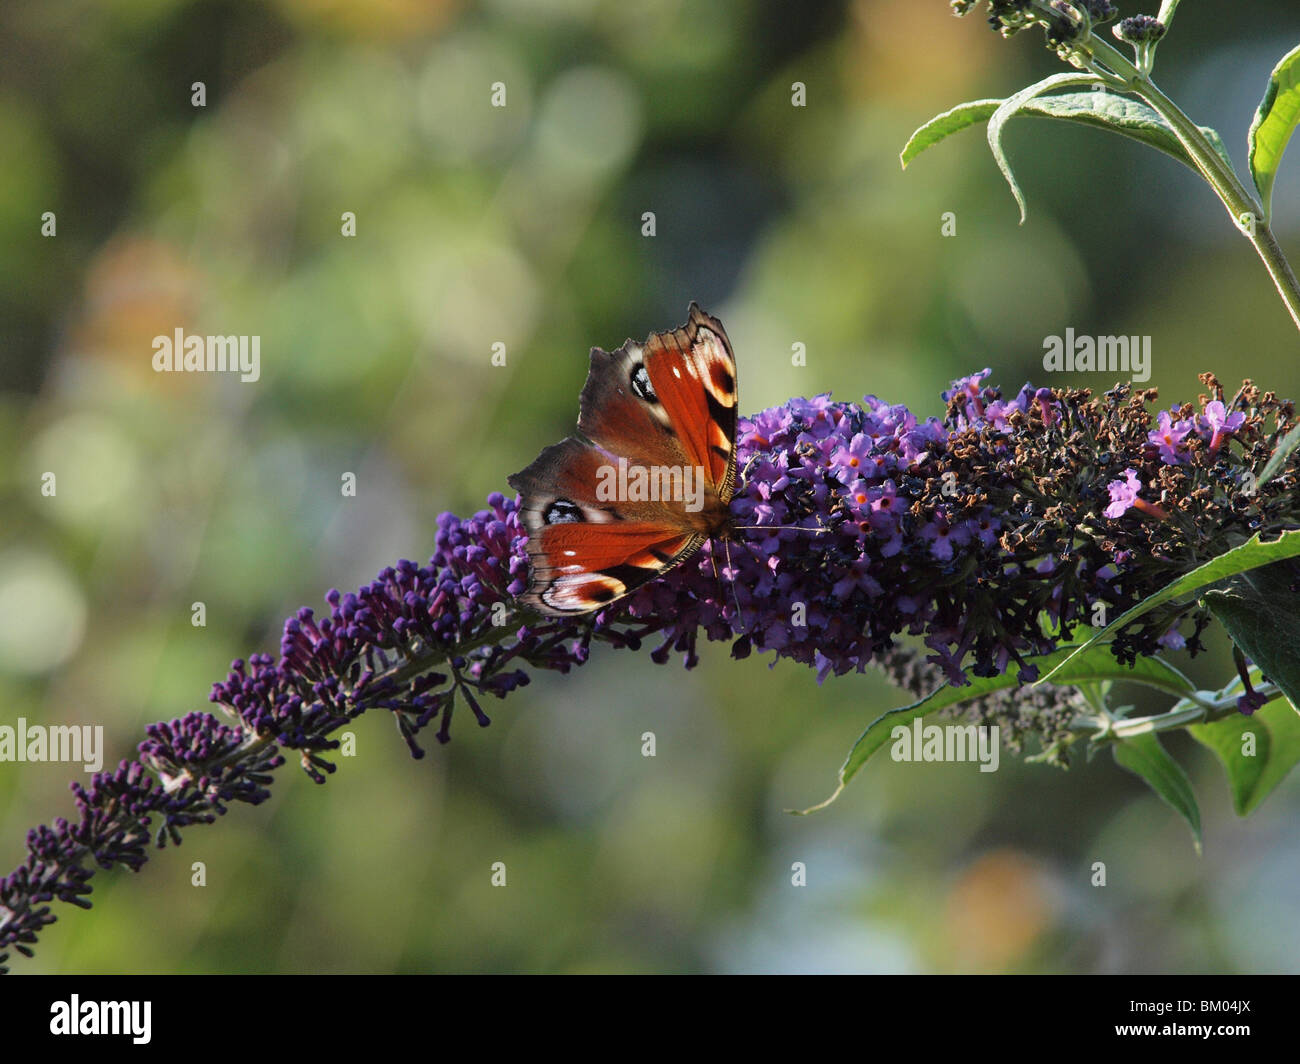 european peacock butterfly - Stock Image